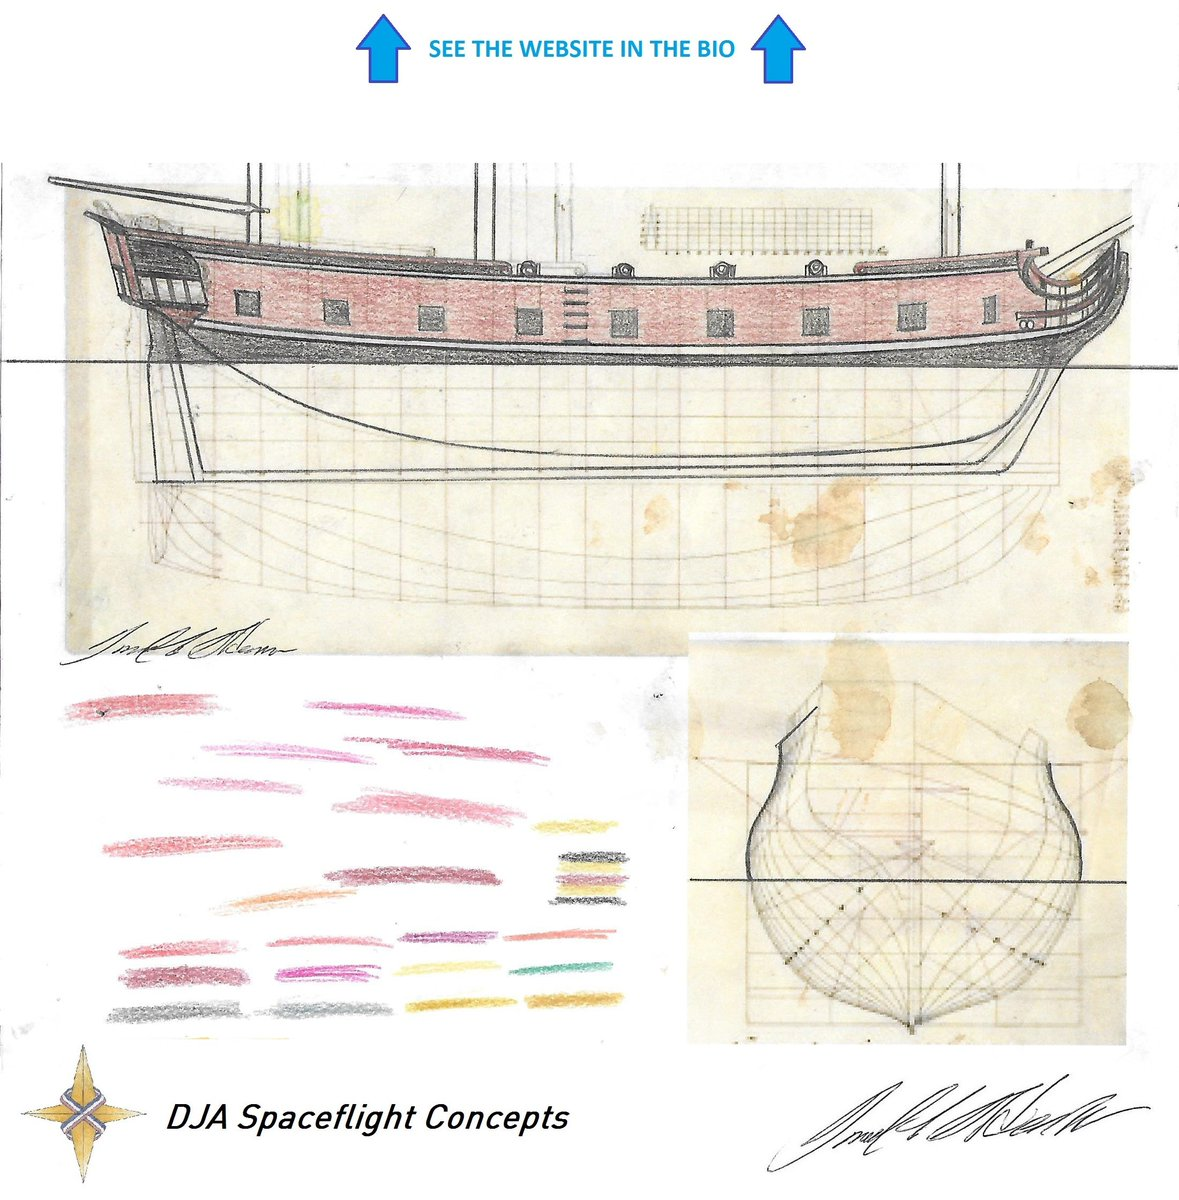 Sailplan Hashtag On Twitter Sailing Ship Diagram Tall Ships Pinterest Spaceflight Concepts Tallships Tallship Manowar Warship Sail Vessel Cannon Cannons Port Deck Water Ageofsail Sailor